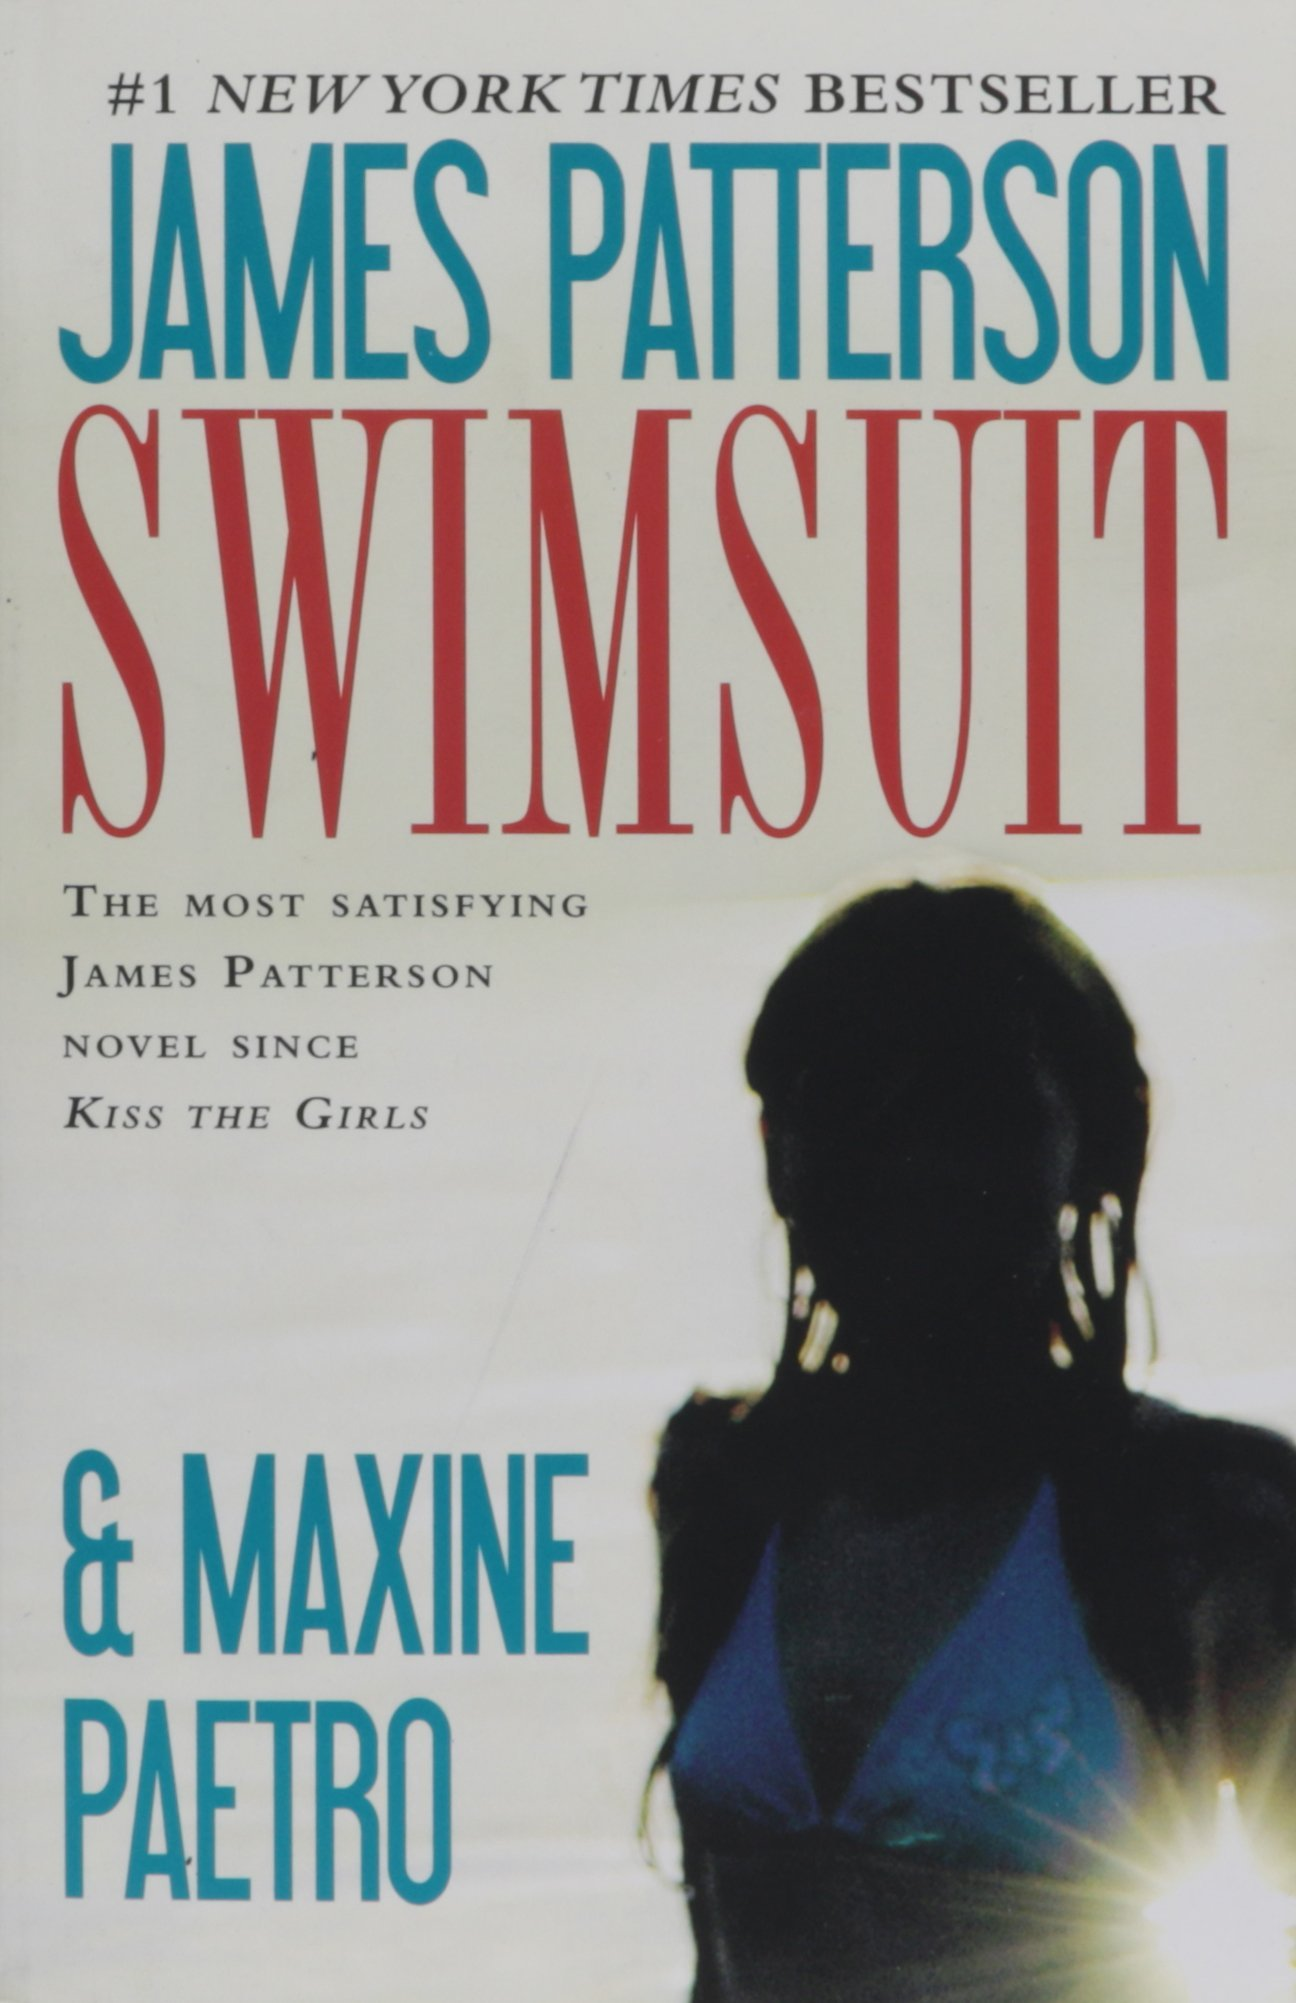 (SWIMSUIT)Swimsuit BY Patterson, James[Author]Paperback PDF